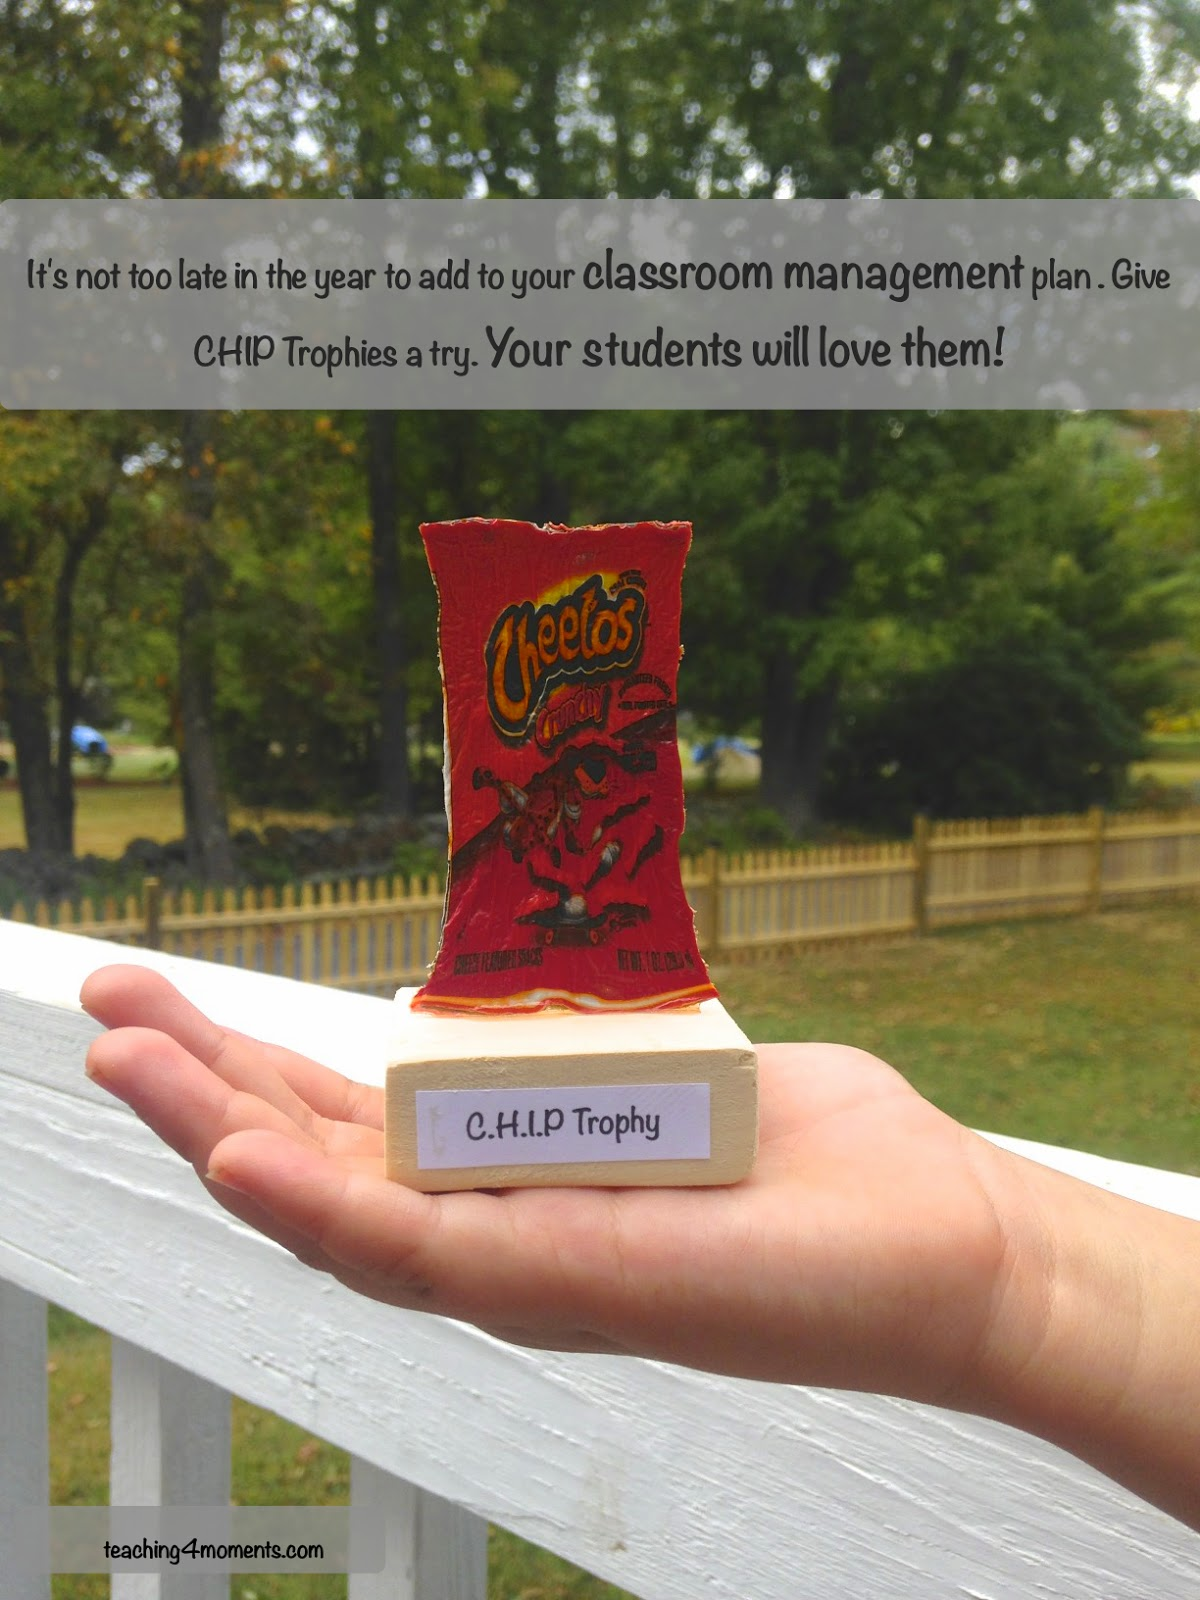 Chip Trophy is about 4inches tall.